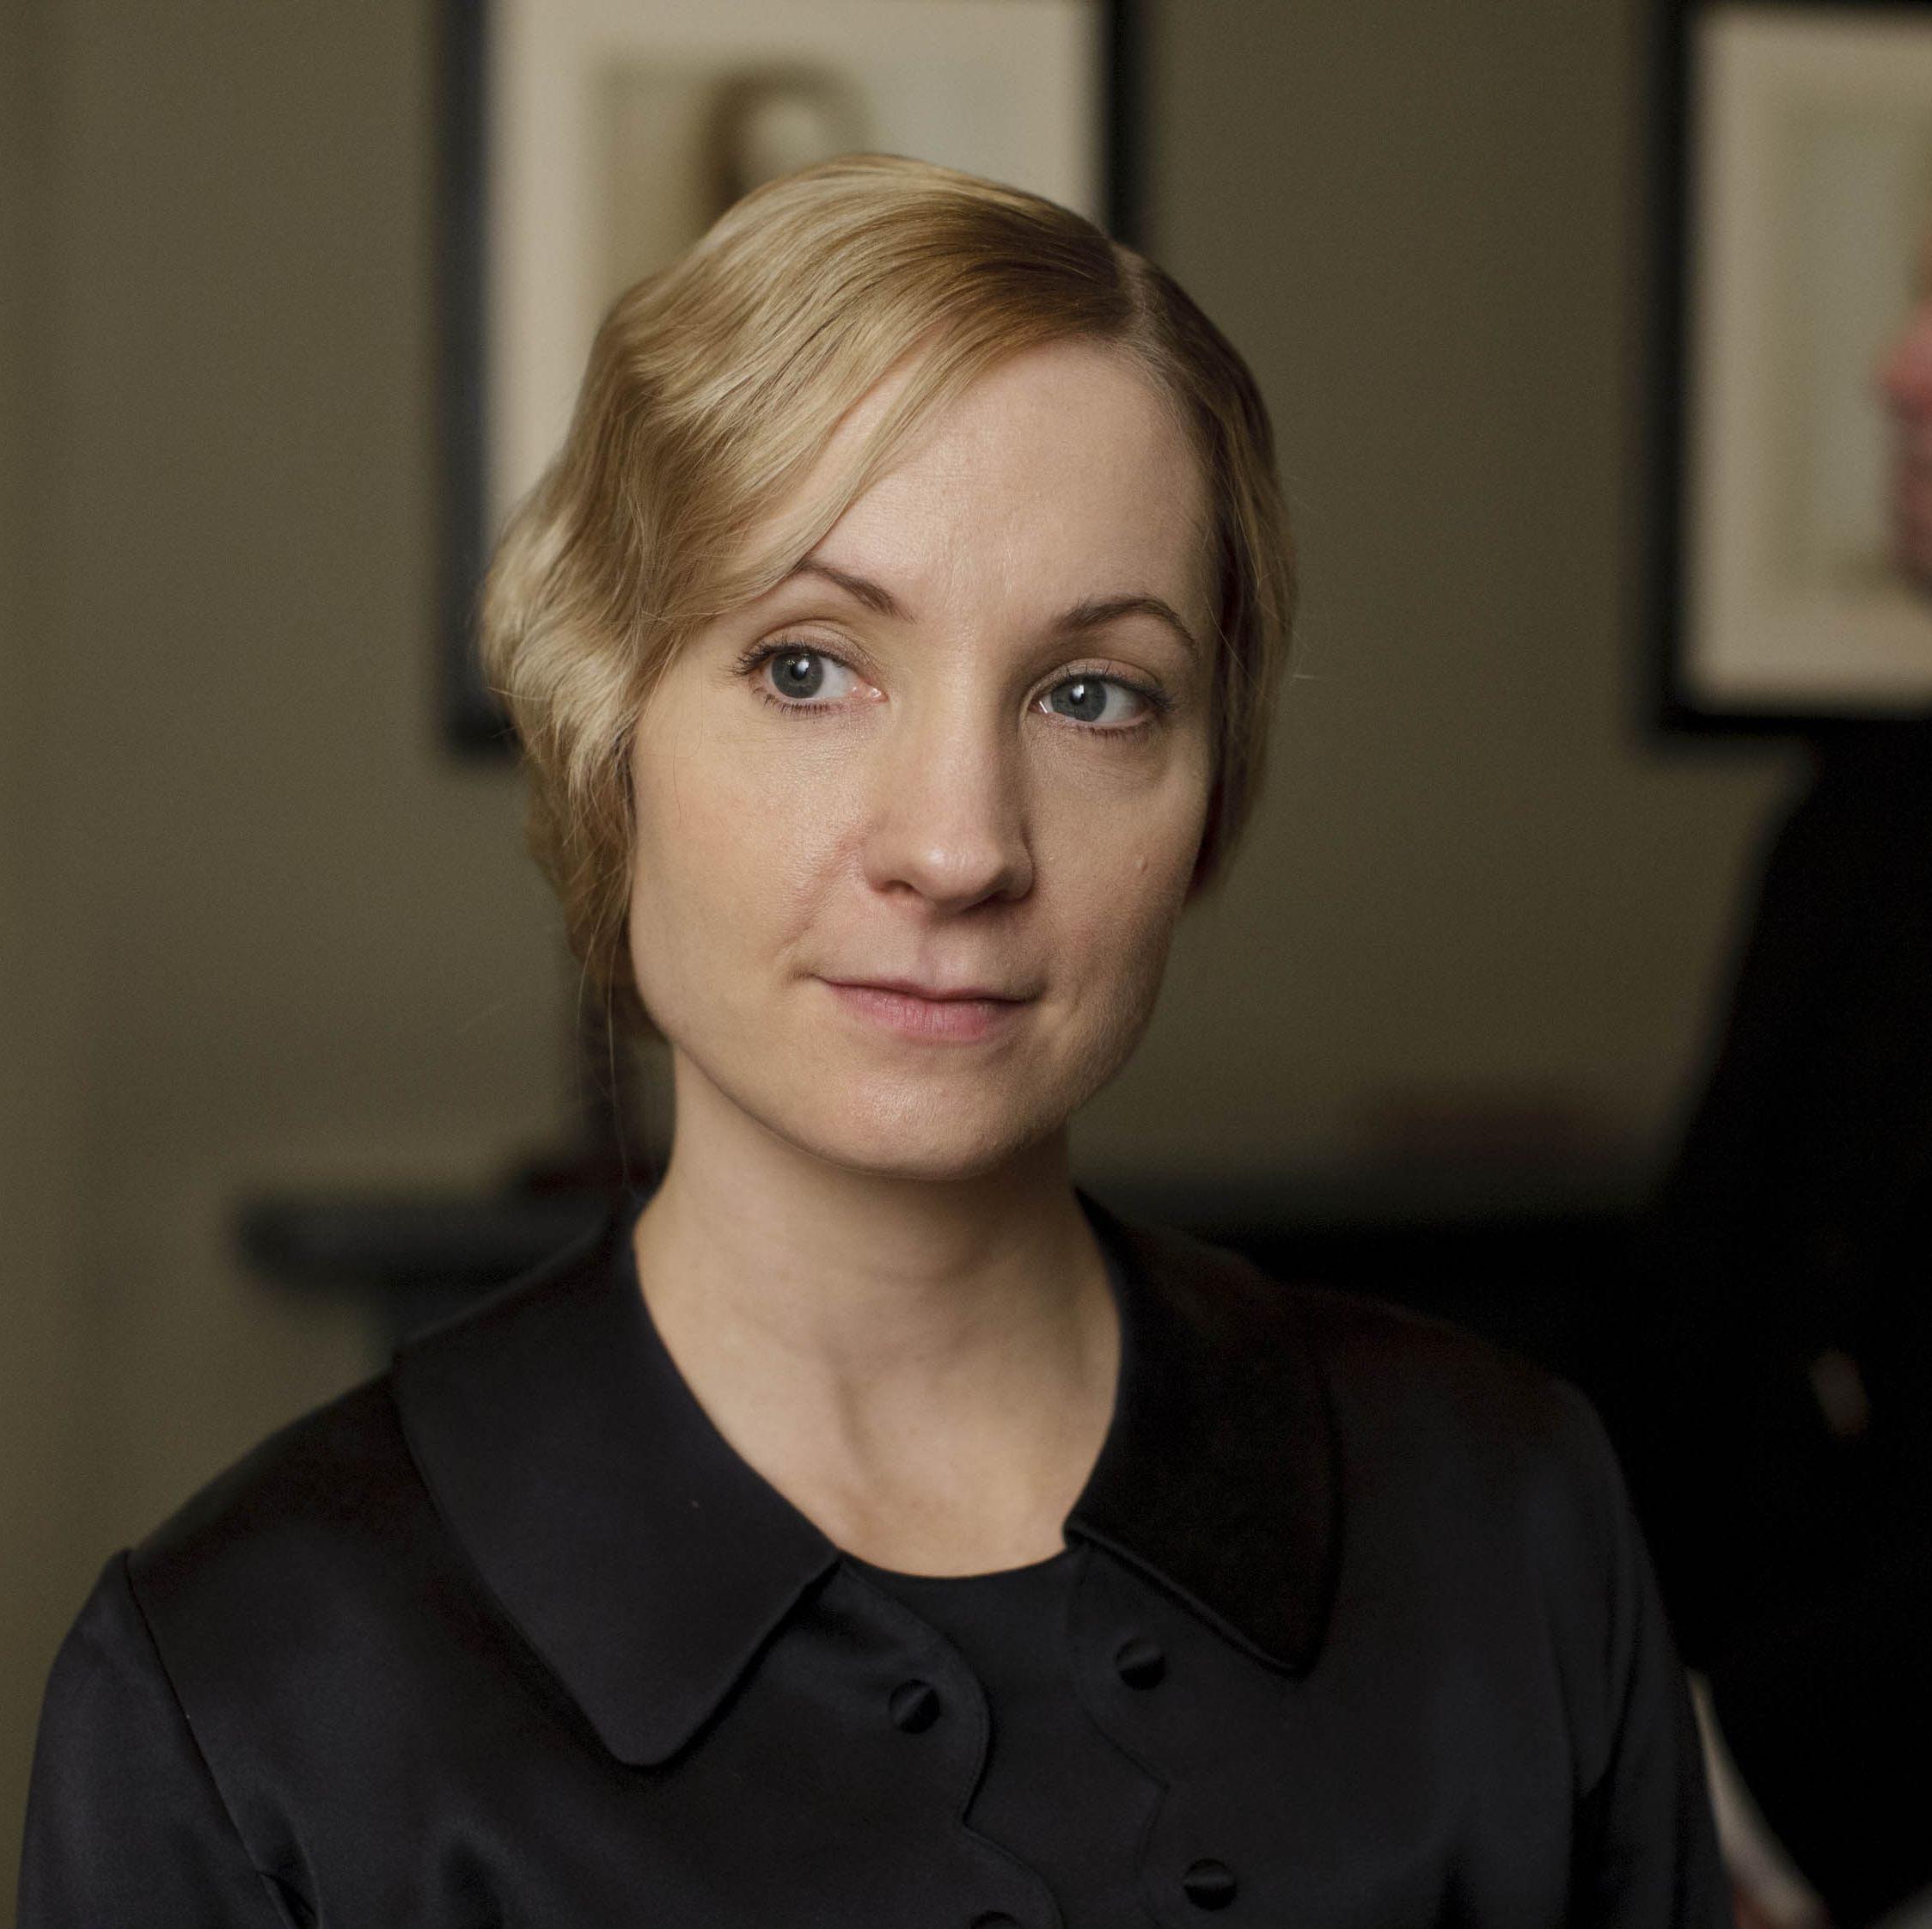 """Downton Abbey star Joanne Froggatt teases the movie will be full of """"romance"""" and """"intrigue"""""""